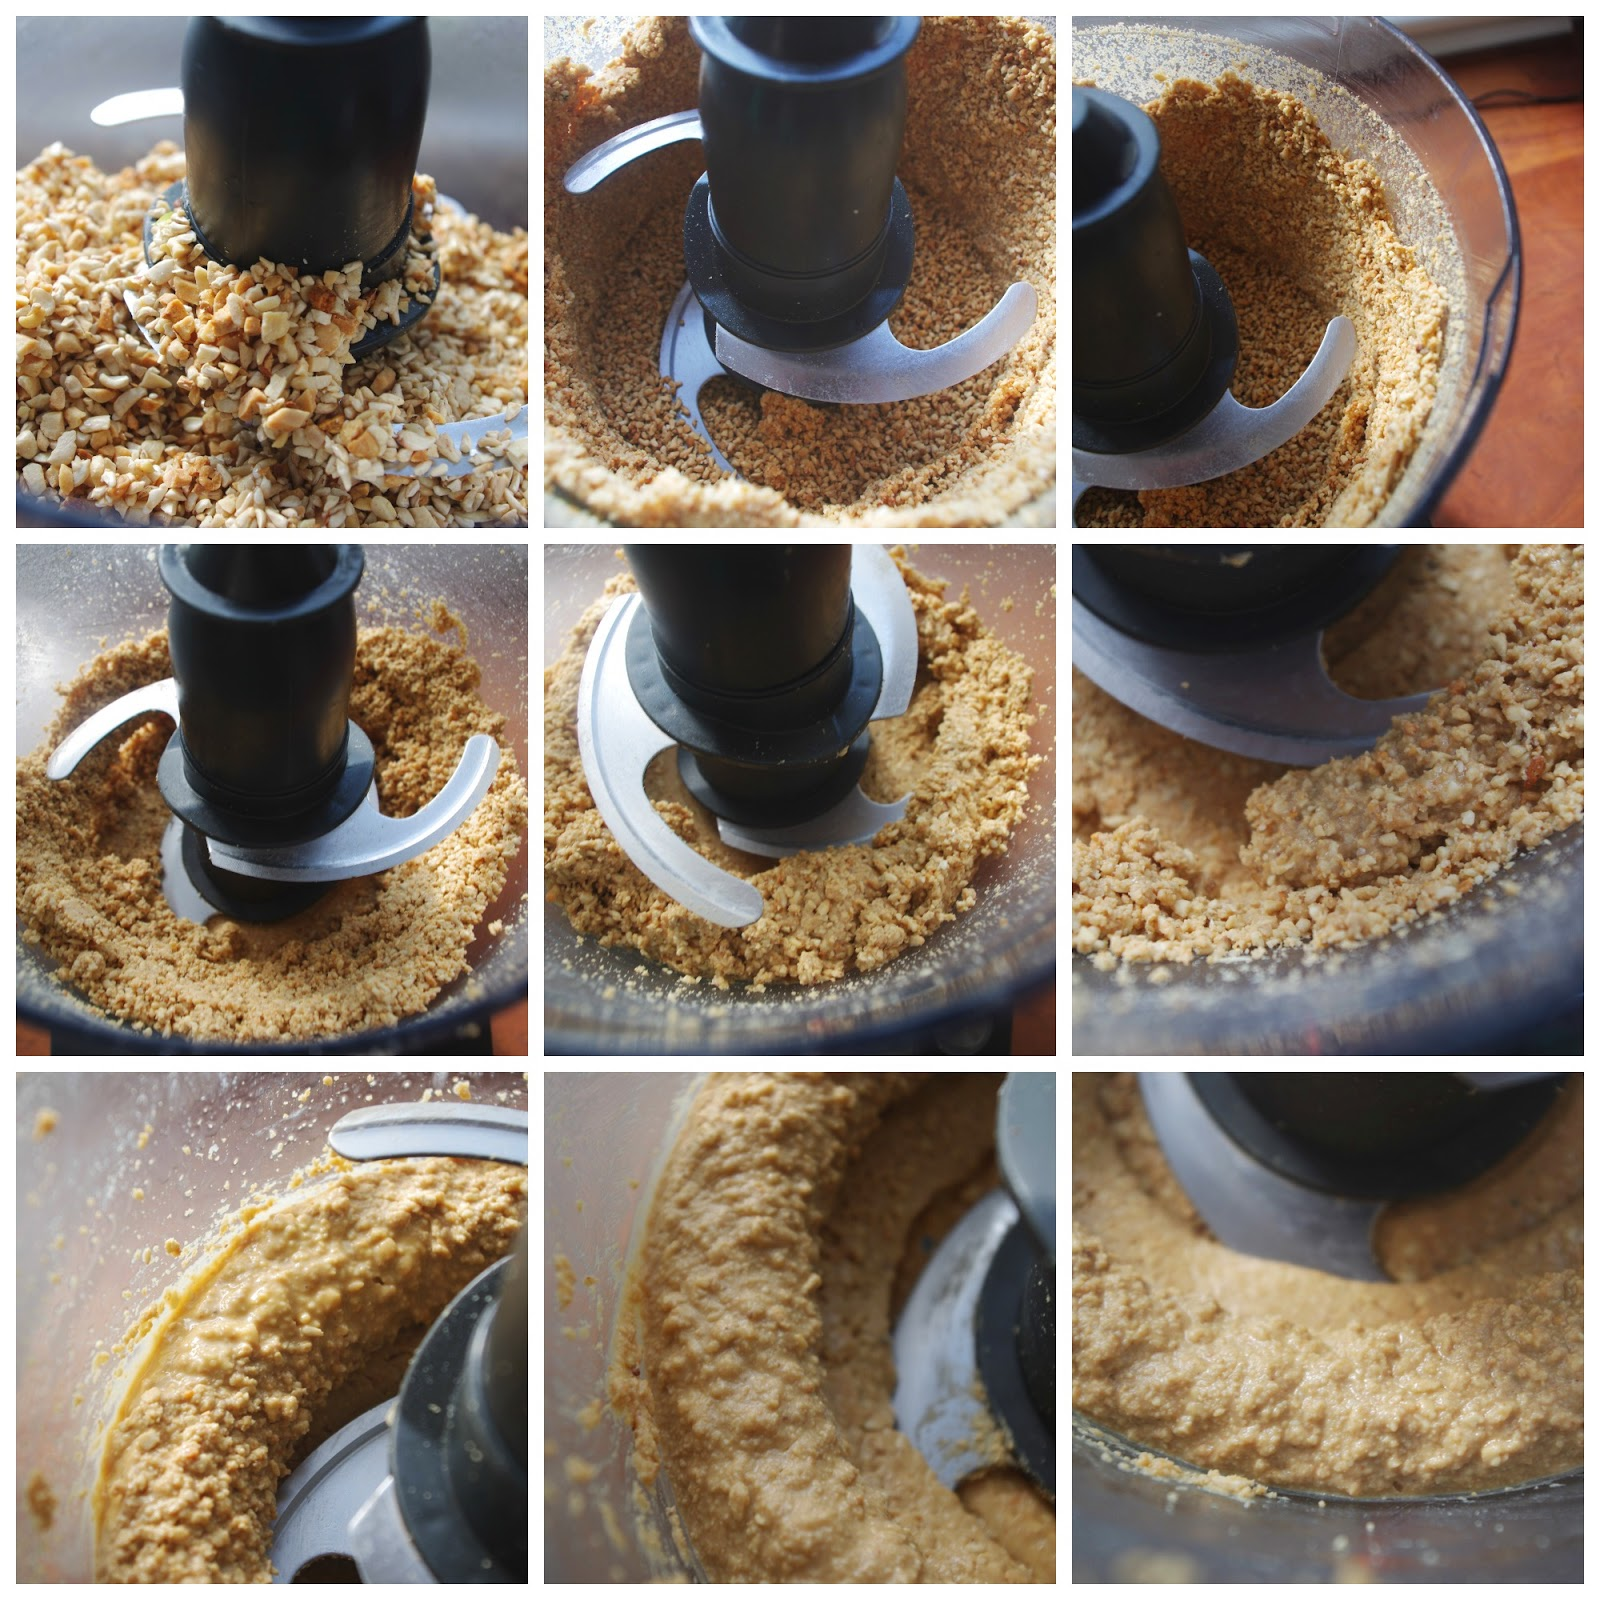 Process of nut butter stages